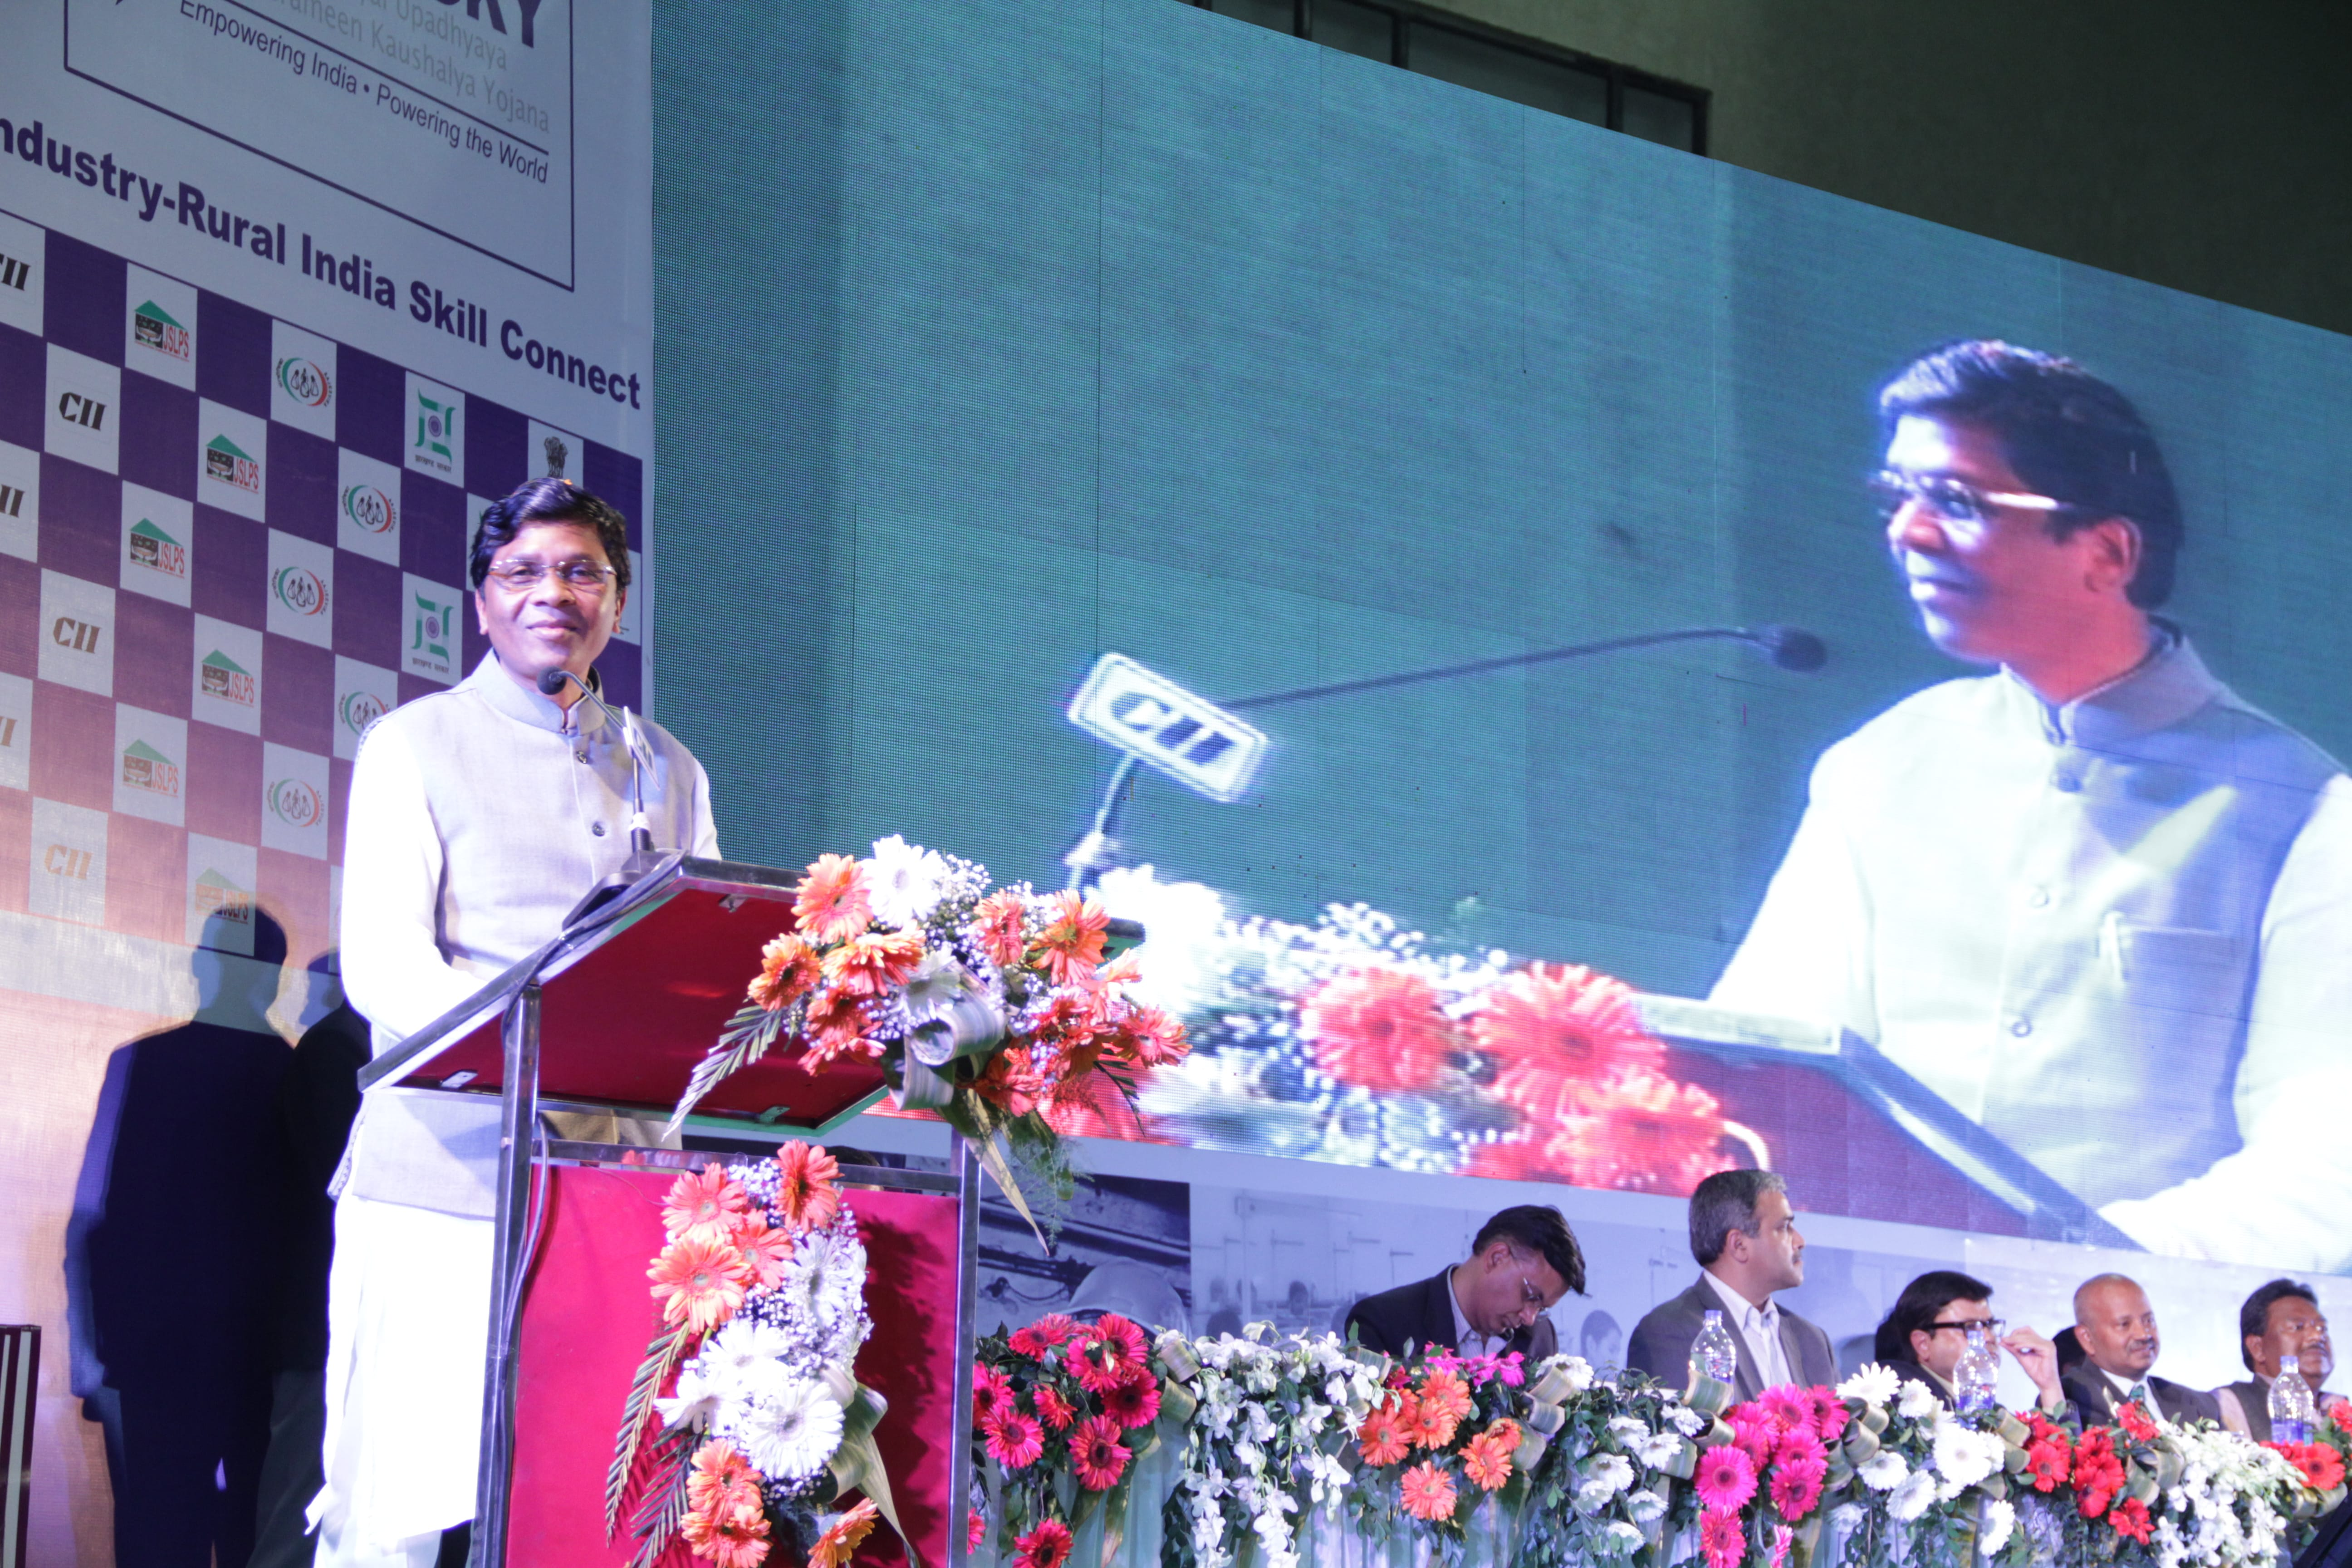 MOS, MORD addressing the gathering at Industry-Rural India Connect